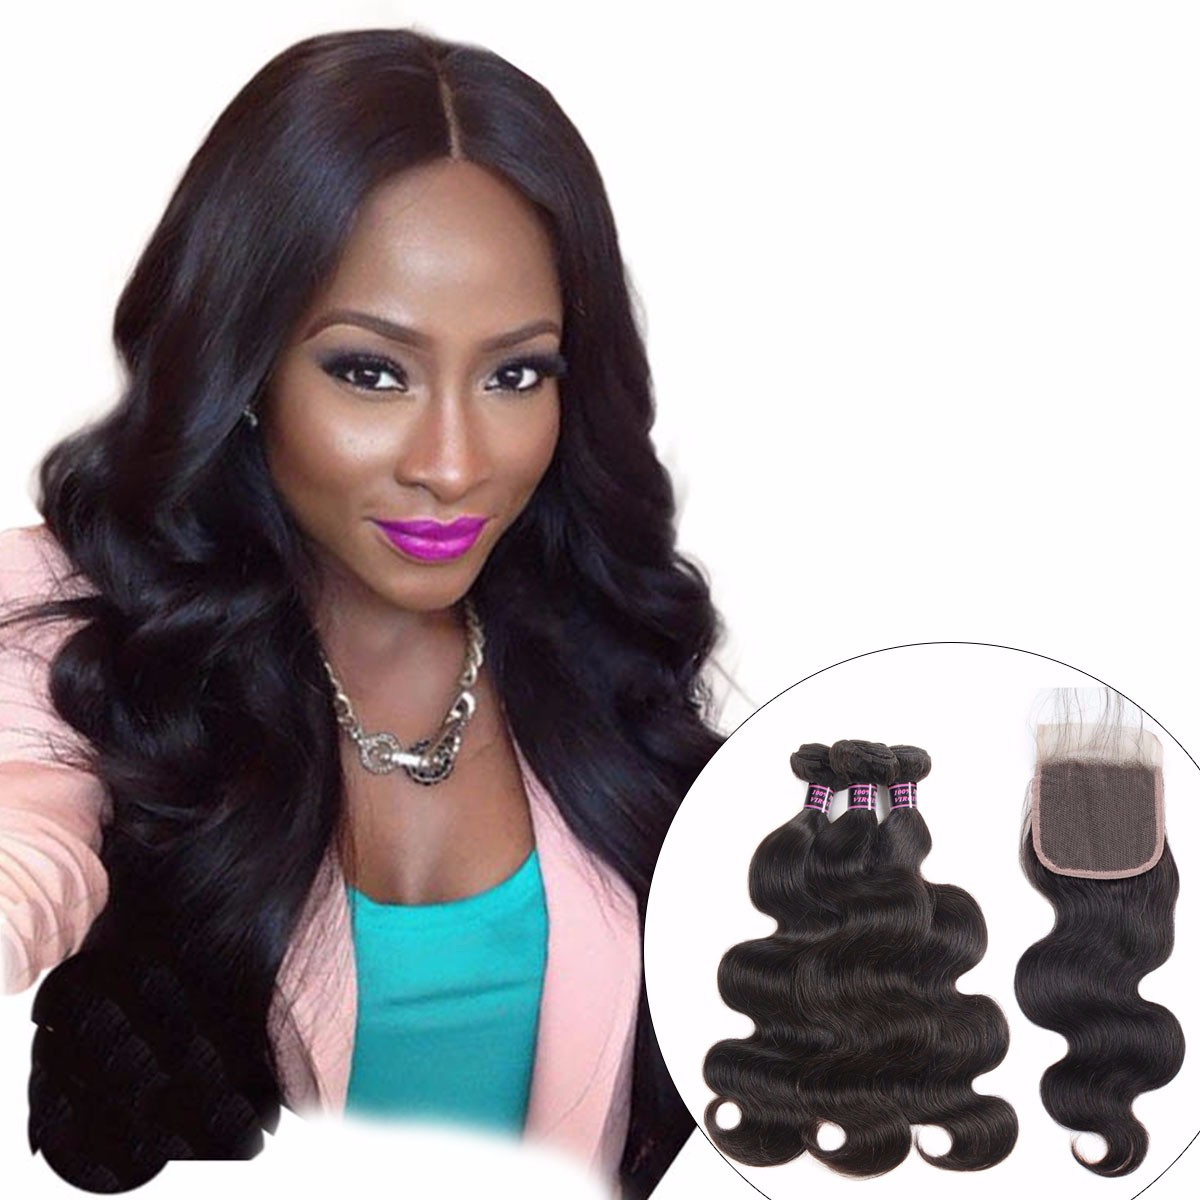 Body Wave Bundles With Closure, 100% Human Hair Bundles With Closure, 3 Bundles Brazilian Hair Weave 26 28 28 Closure20Three Part